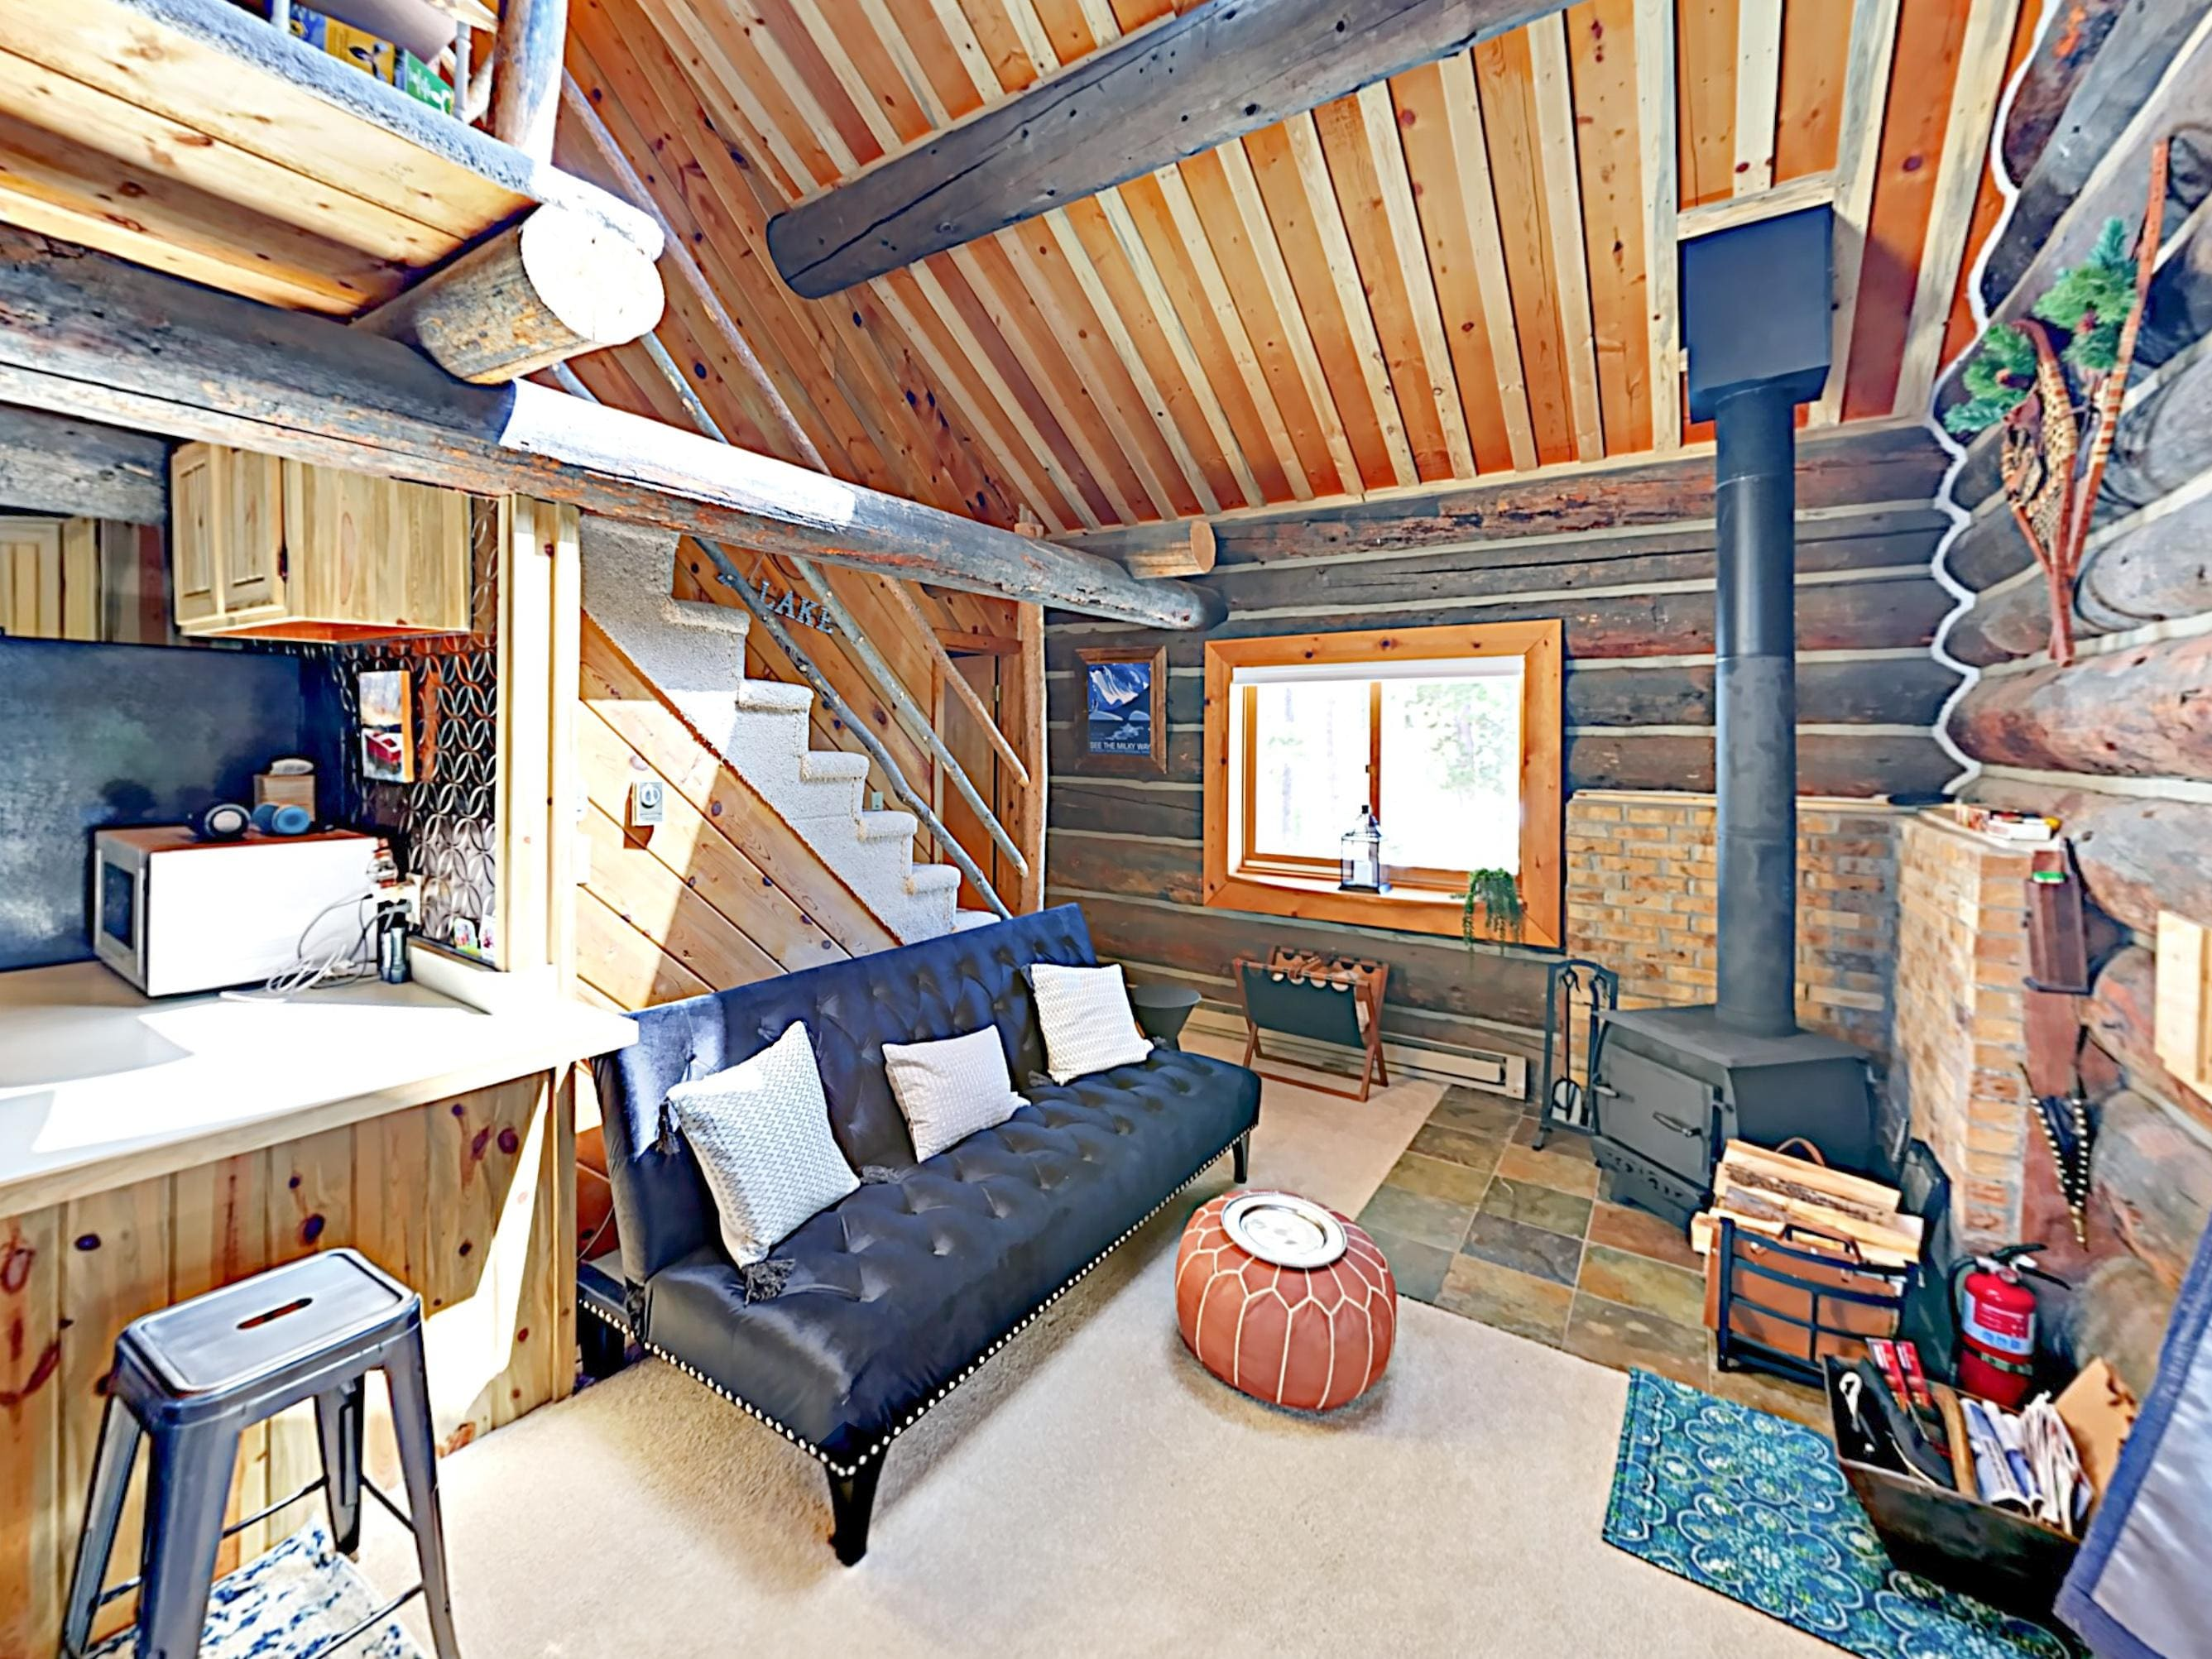 The inviting living are has a wood-burning fireplace and a futon.